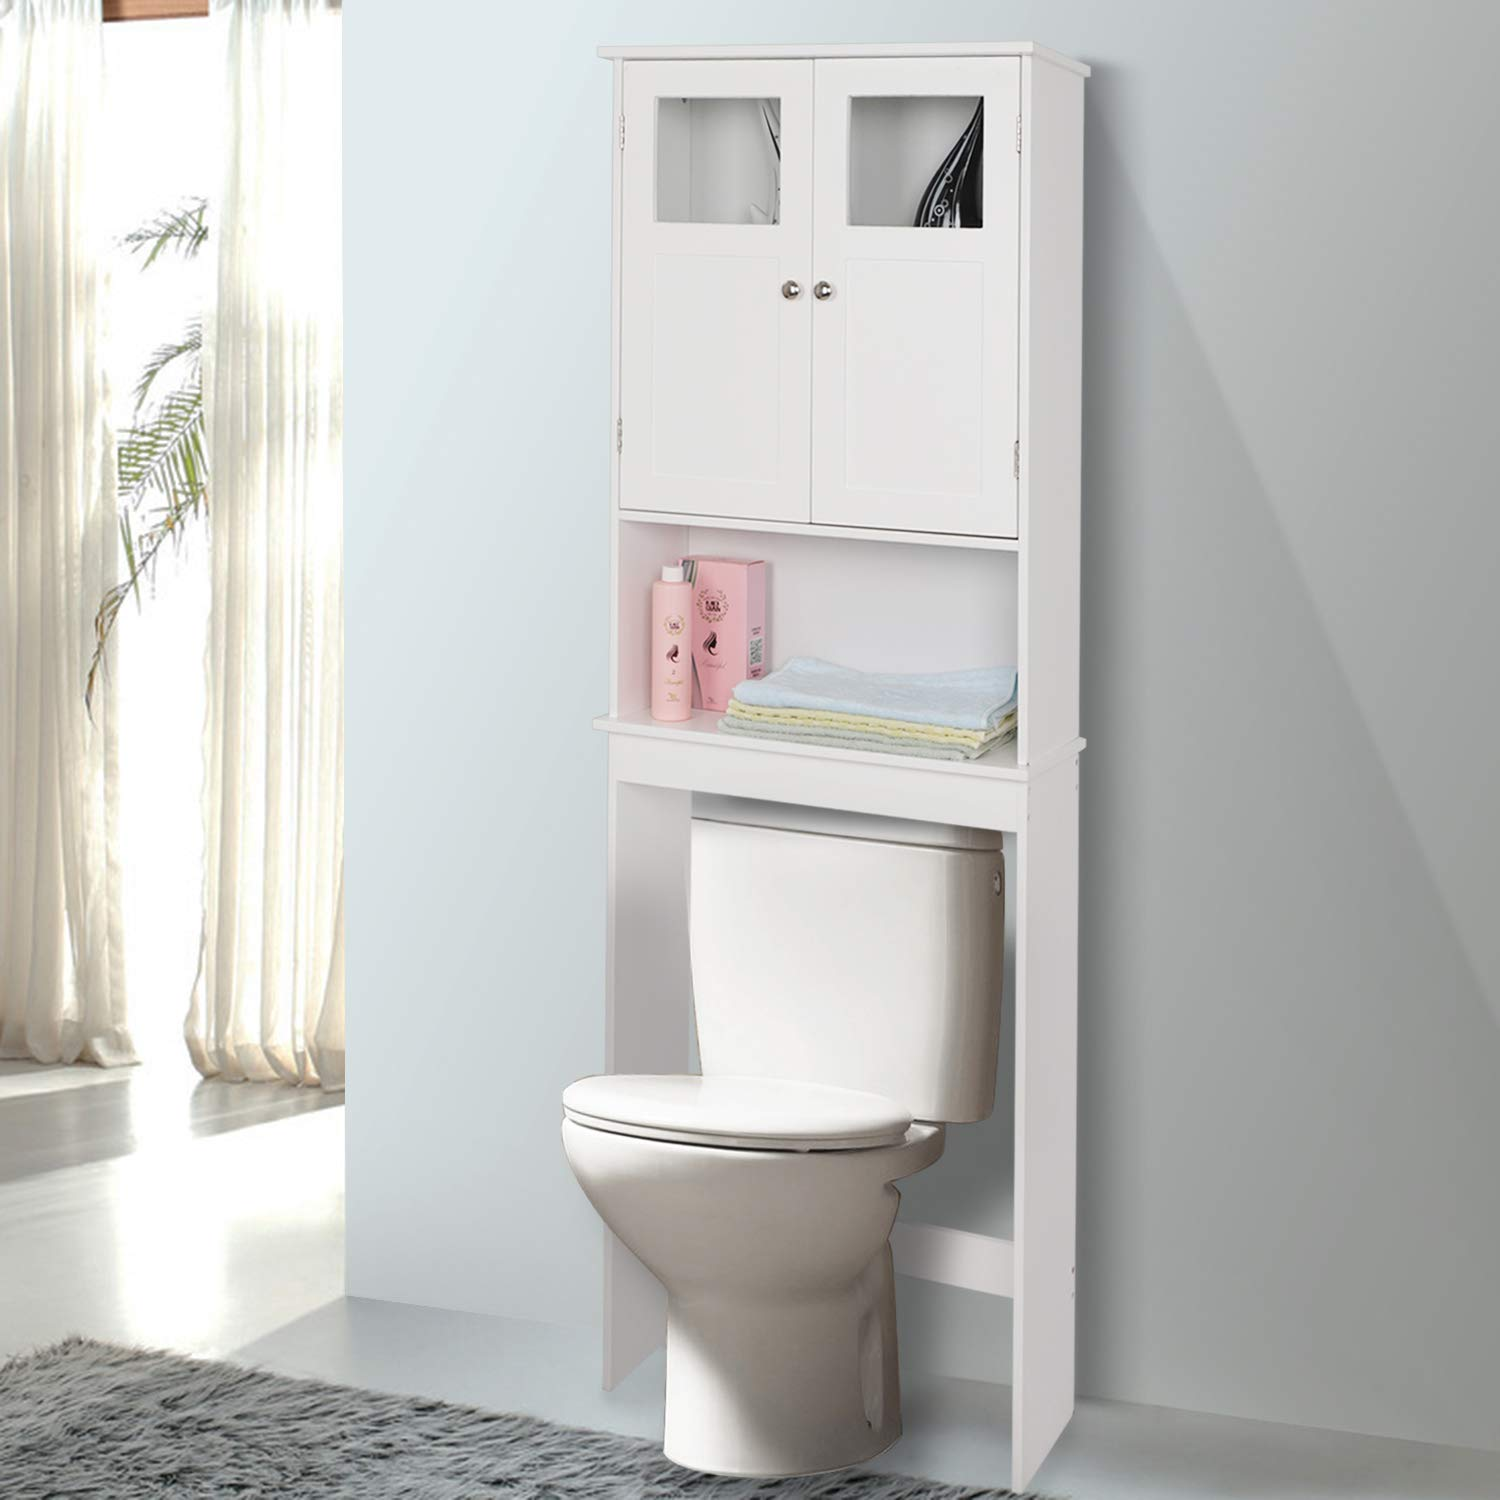 Bonnlo Bathroom Over Toilet Space Saver, Wall-Mounted Standing Double Door Storage Cabinet Tower with Adjustable Shelf White 23 1/4''(L) x 8 11/16''(W) x 66 15/16''(H) by Bonnlo